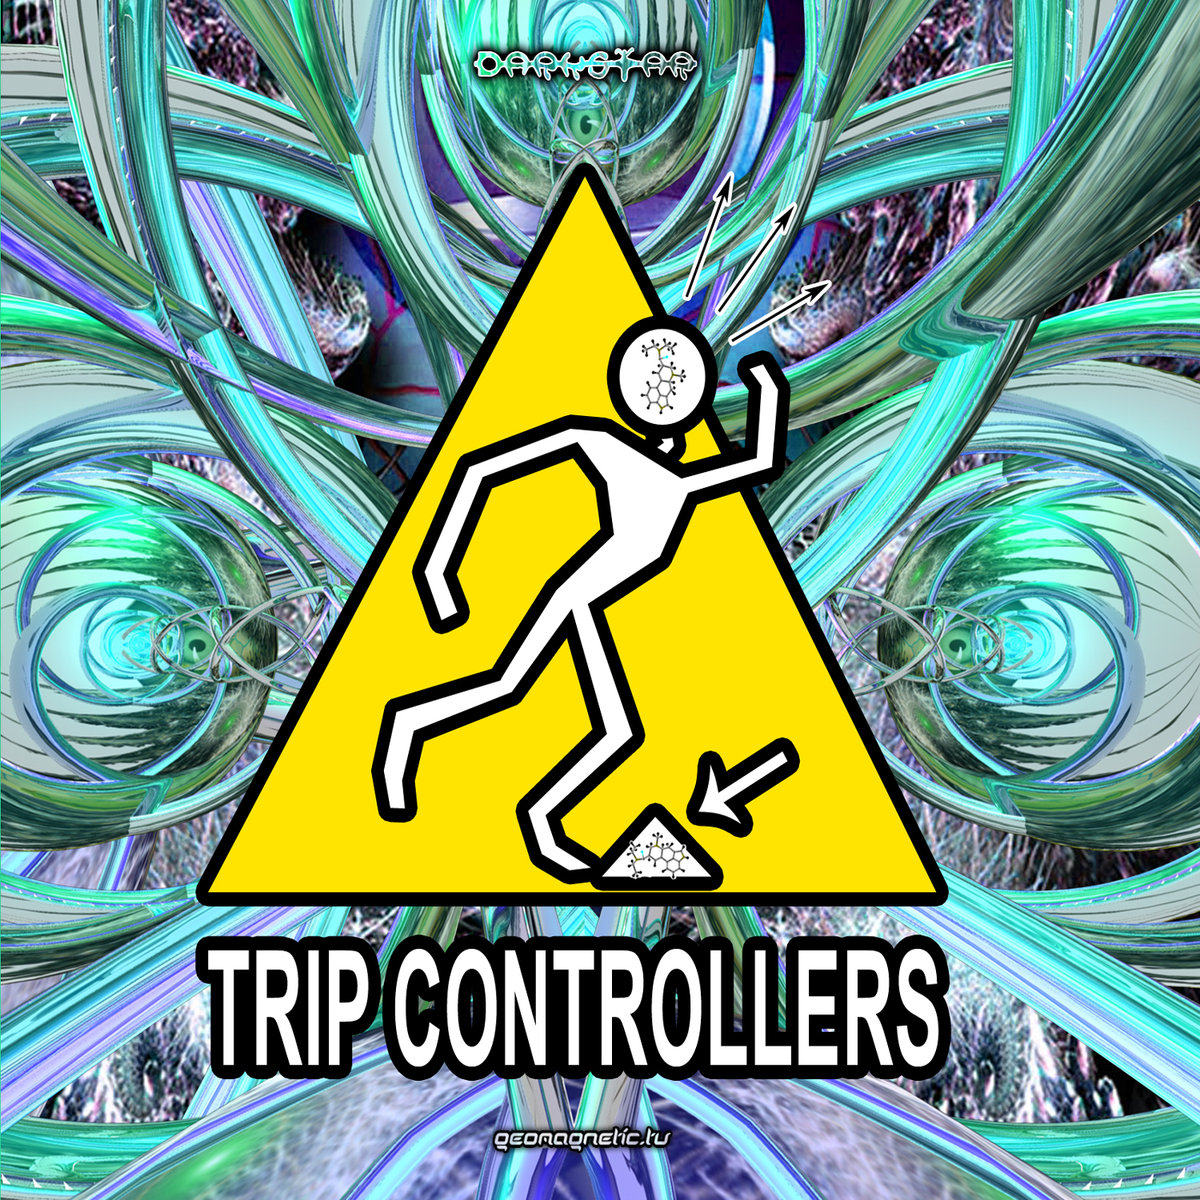 Freqtrik - Dream Recycle @ 'Various Artists - Trip Controllers (Compiled by Dr. Spook)' album (electronic, goa)